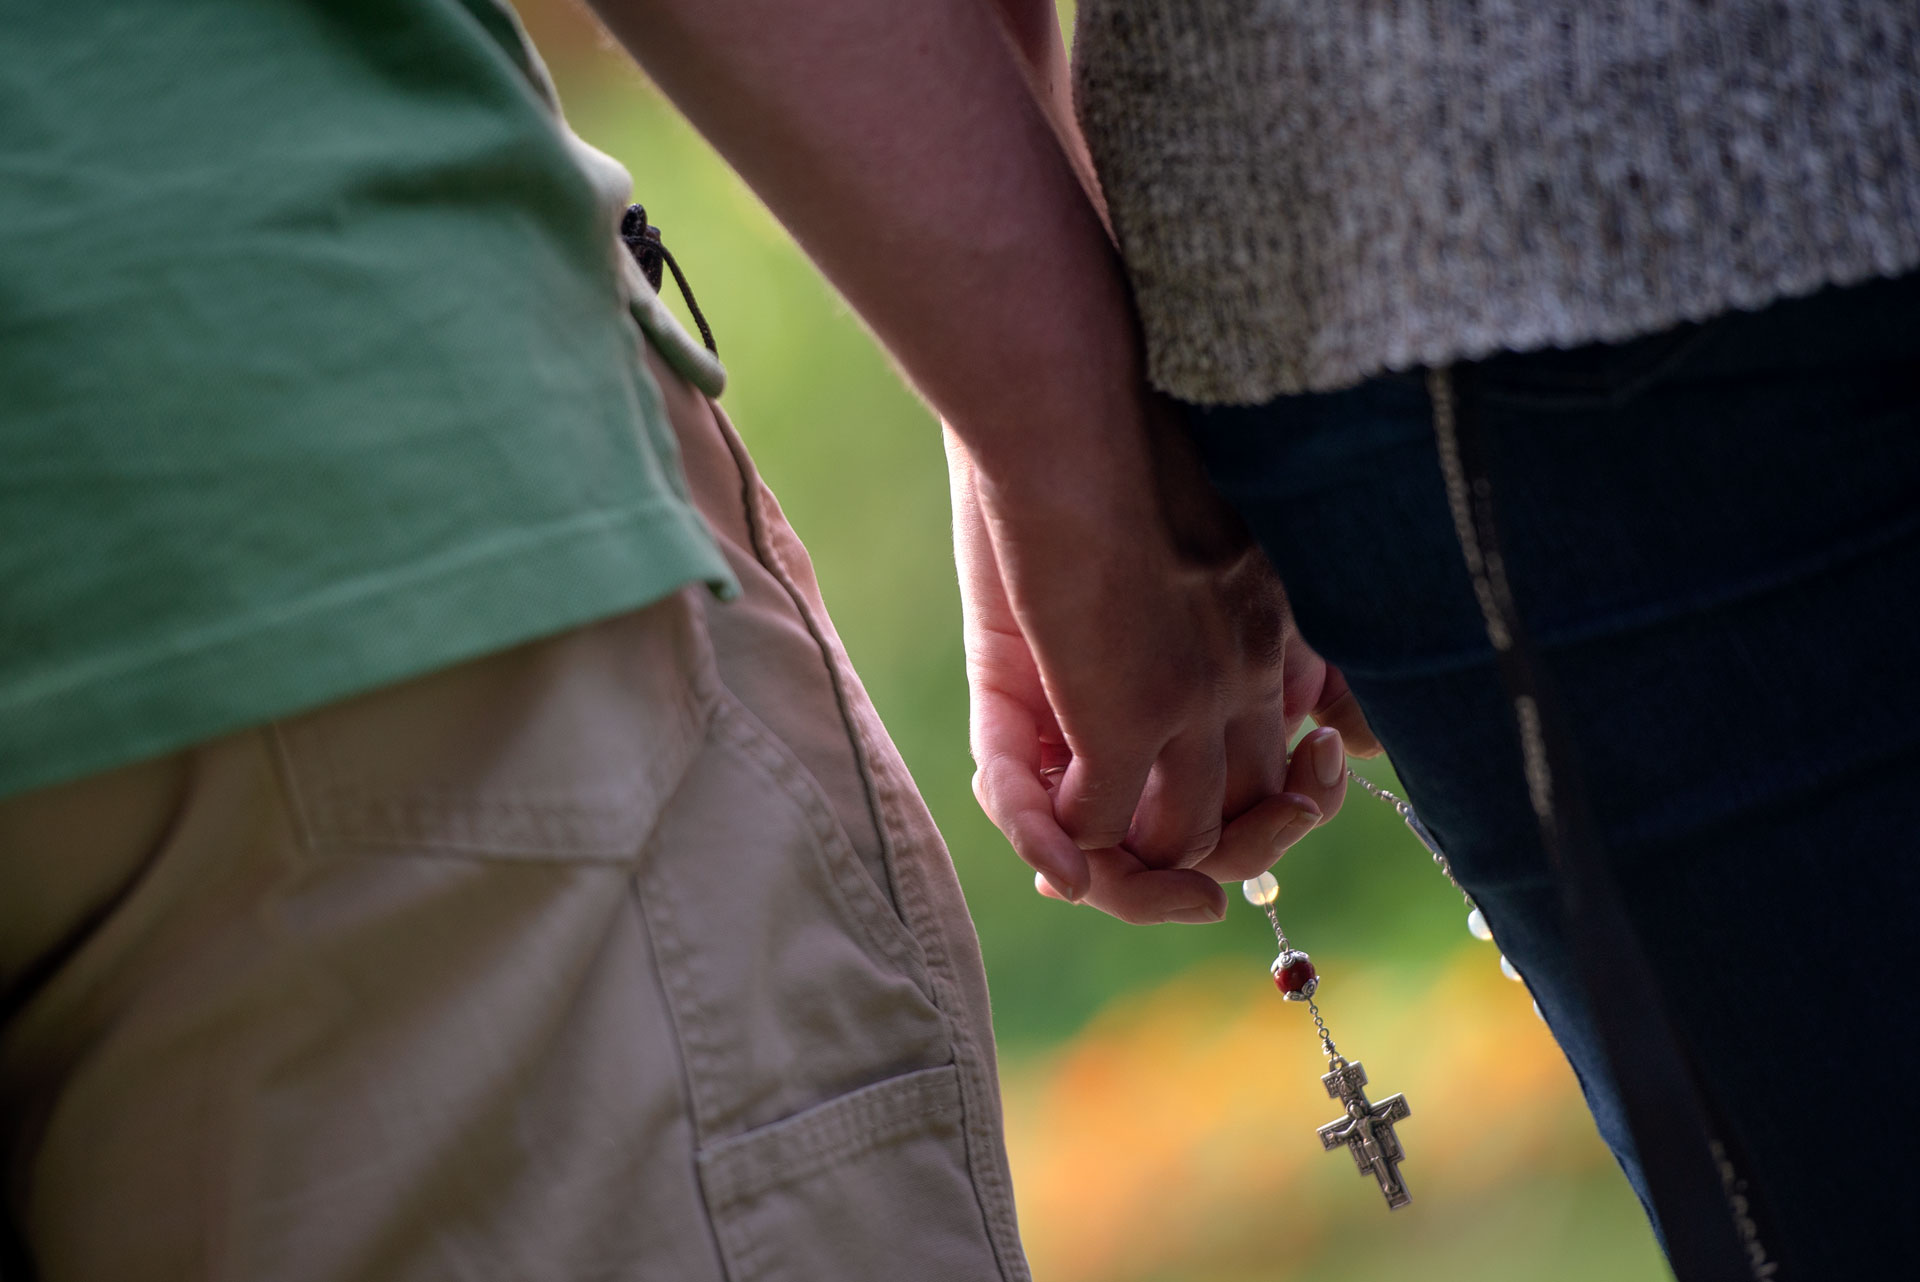 """A couple holds hands while praying the rosary during the """"Grilling with God"""" young-adult event at Rochester's St. John the Evangelist Church Aug. 15. (Courier photo by Jeff Witherow)"""